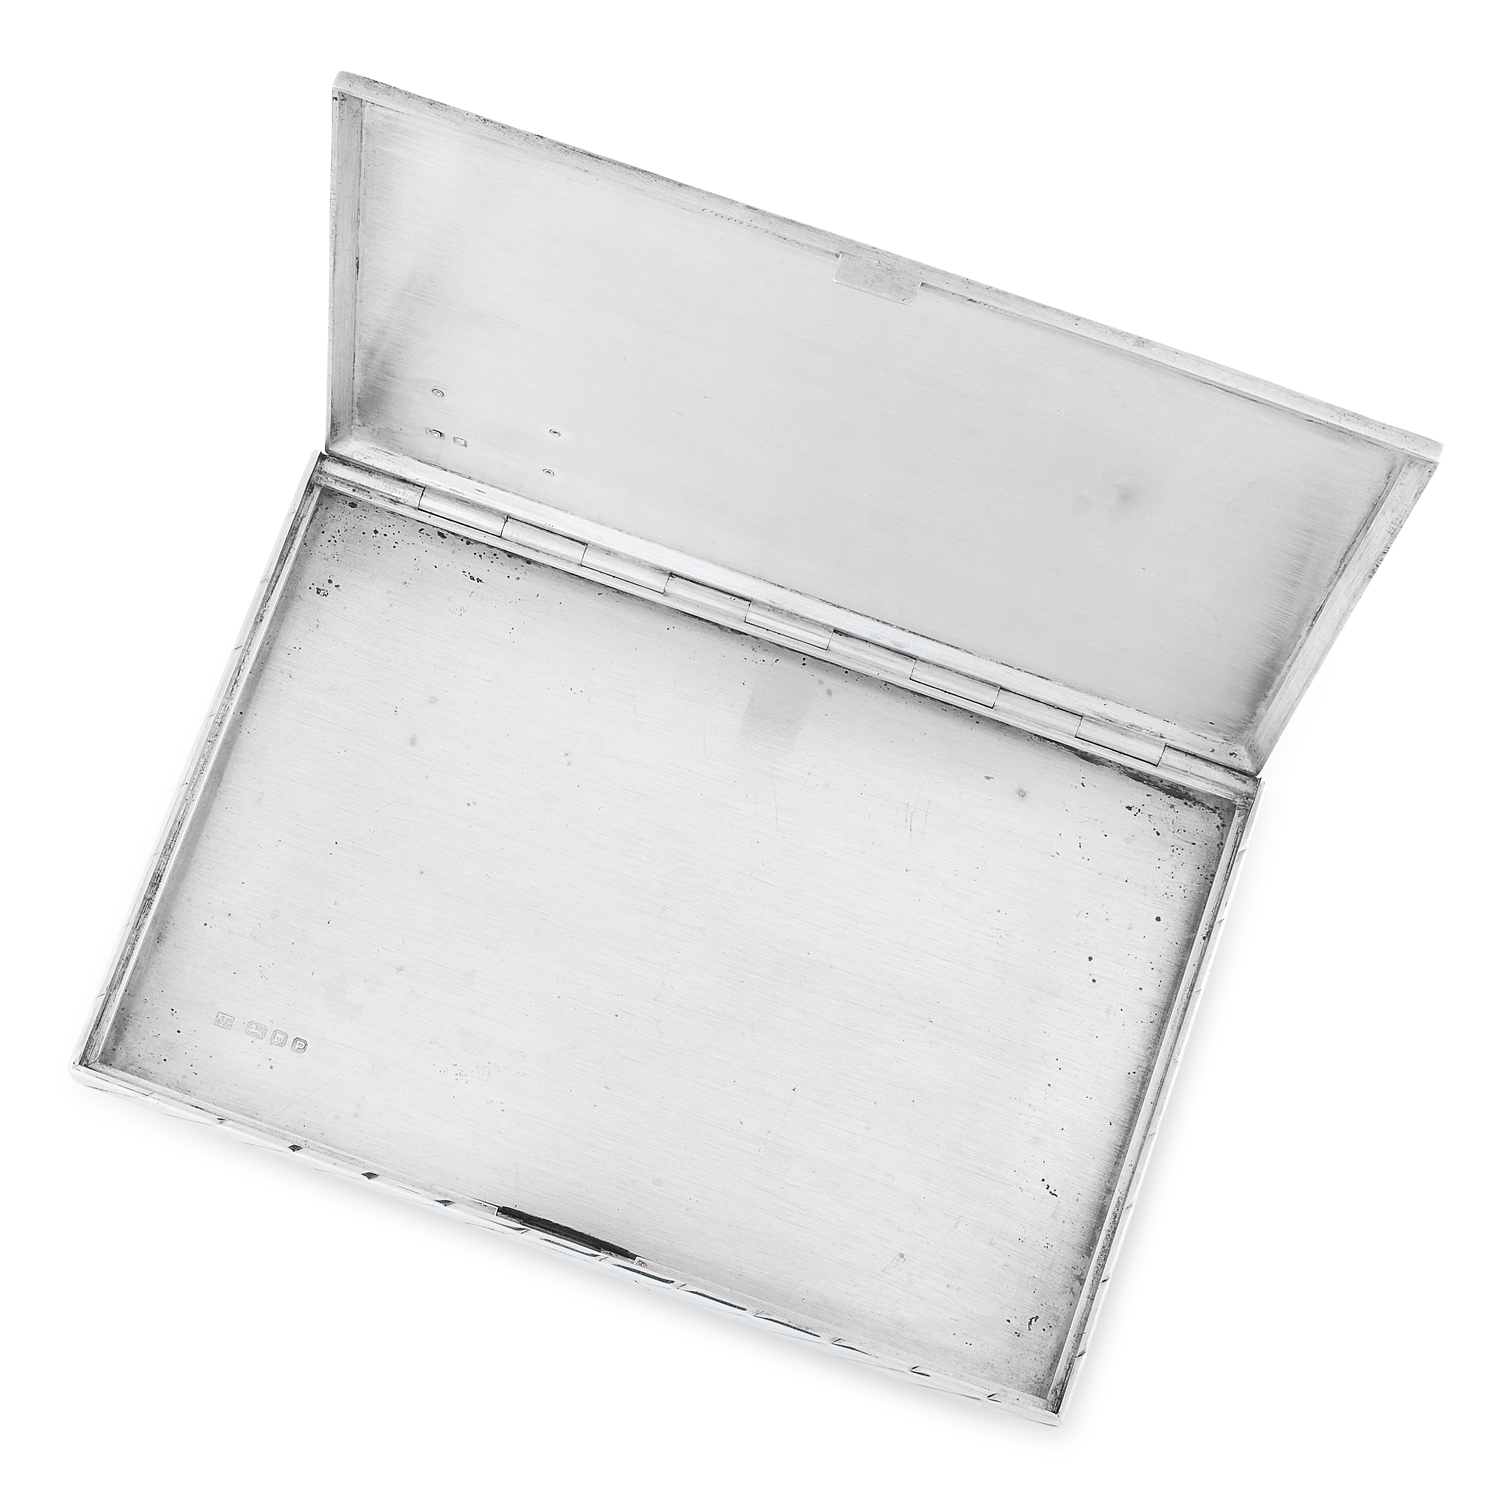 Los 64 - A VINTAGE SILVER CIGARETTE CASE, CARTIER 1950 the rectangular form decorated with diagonal linear